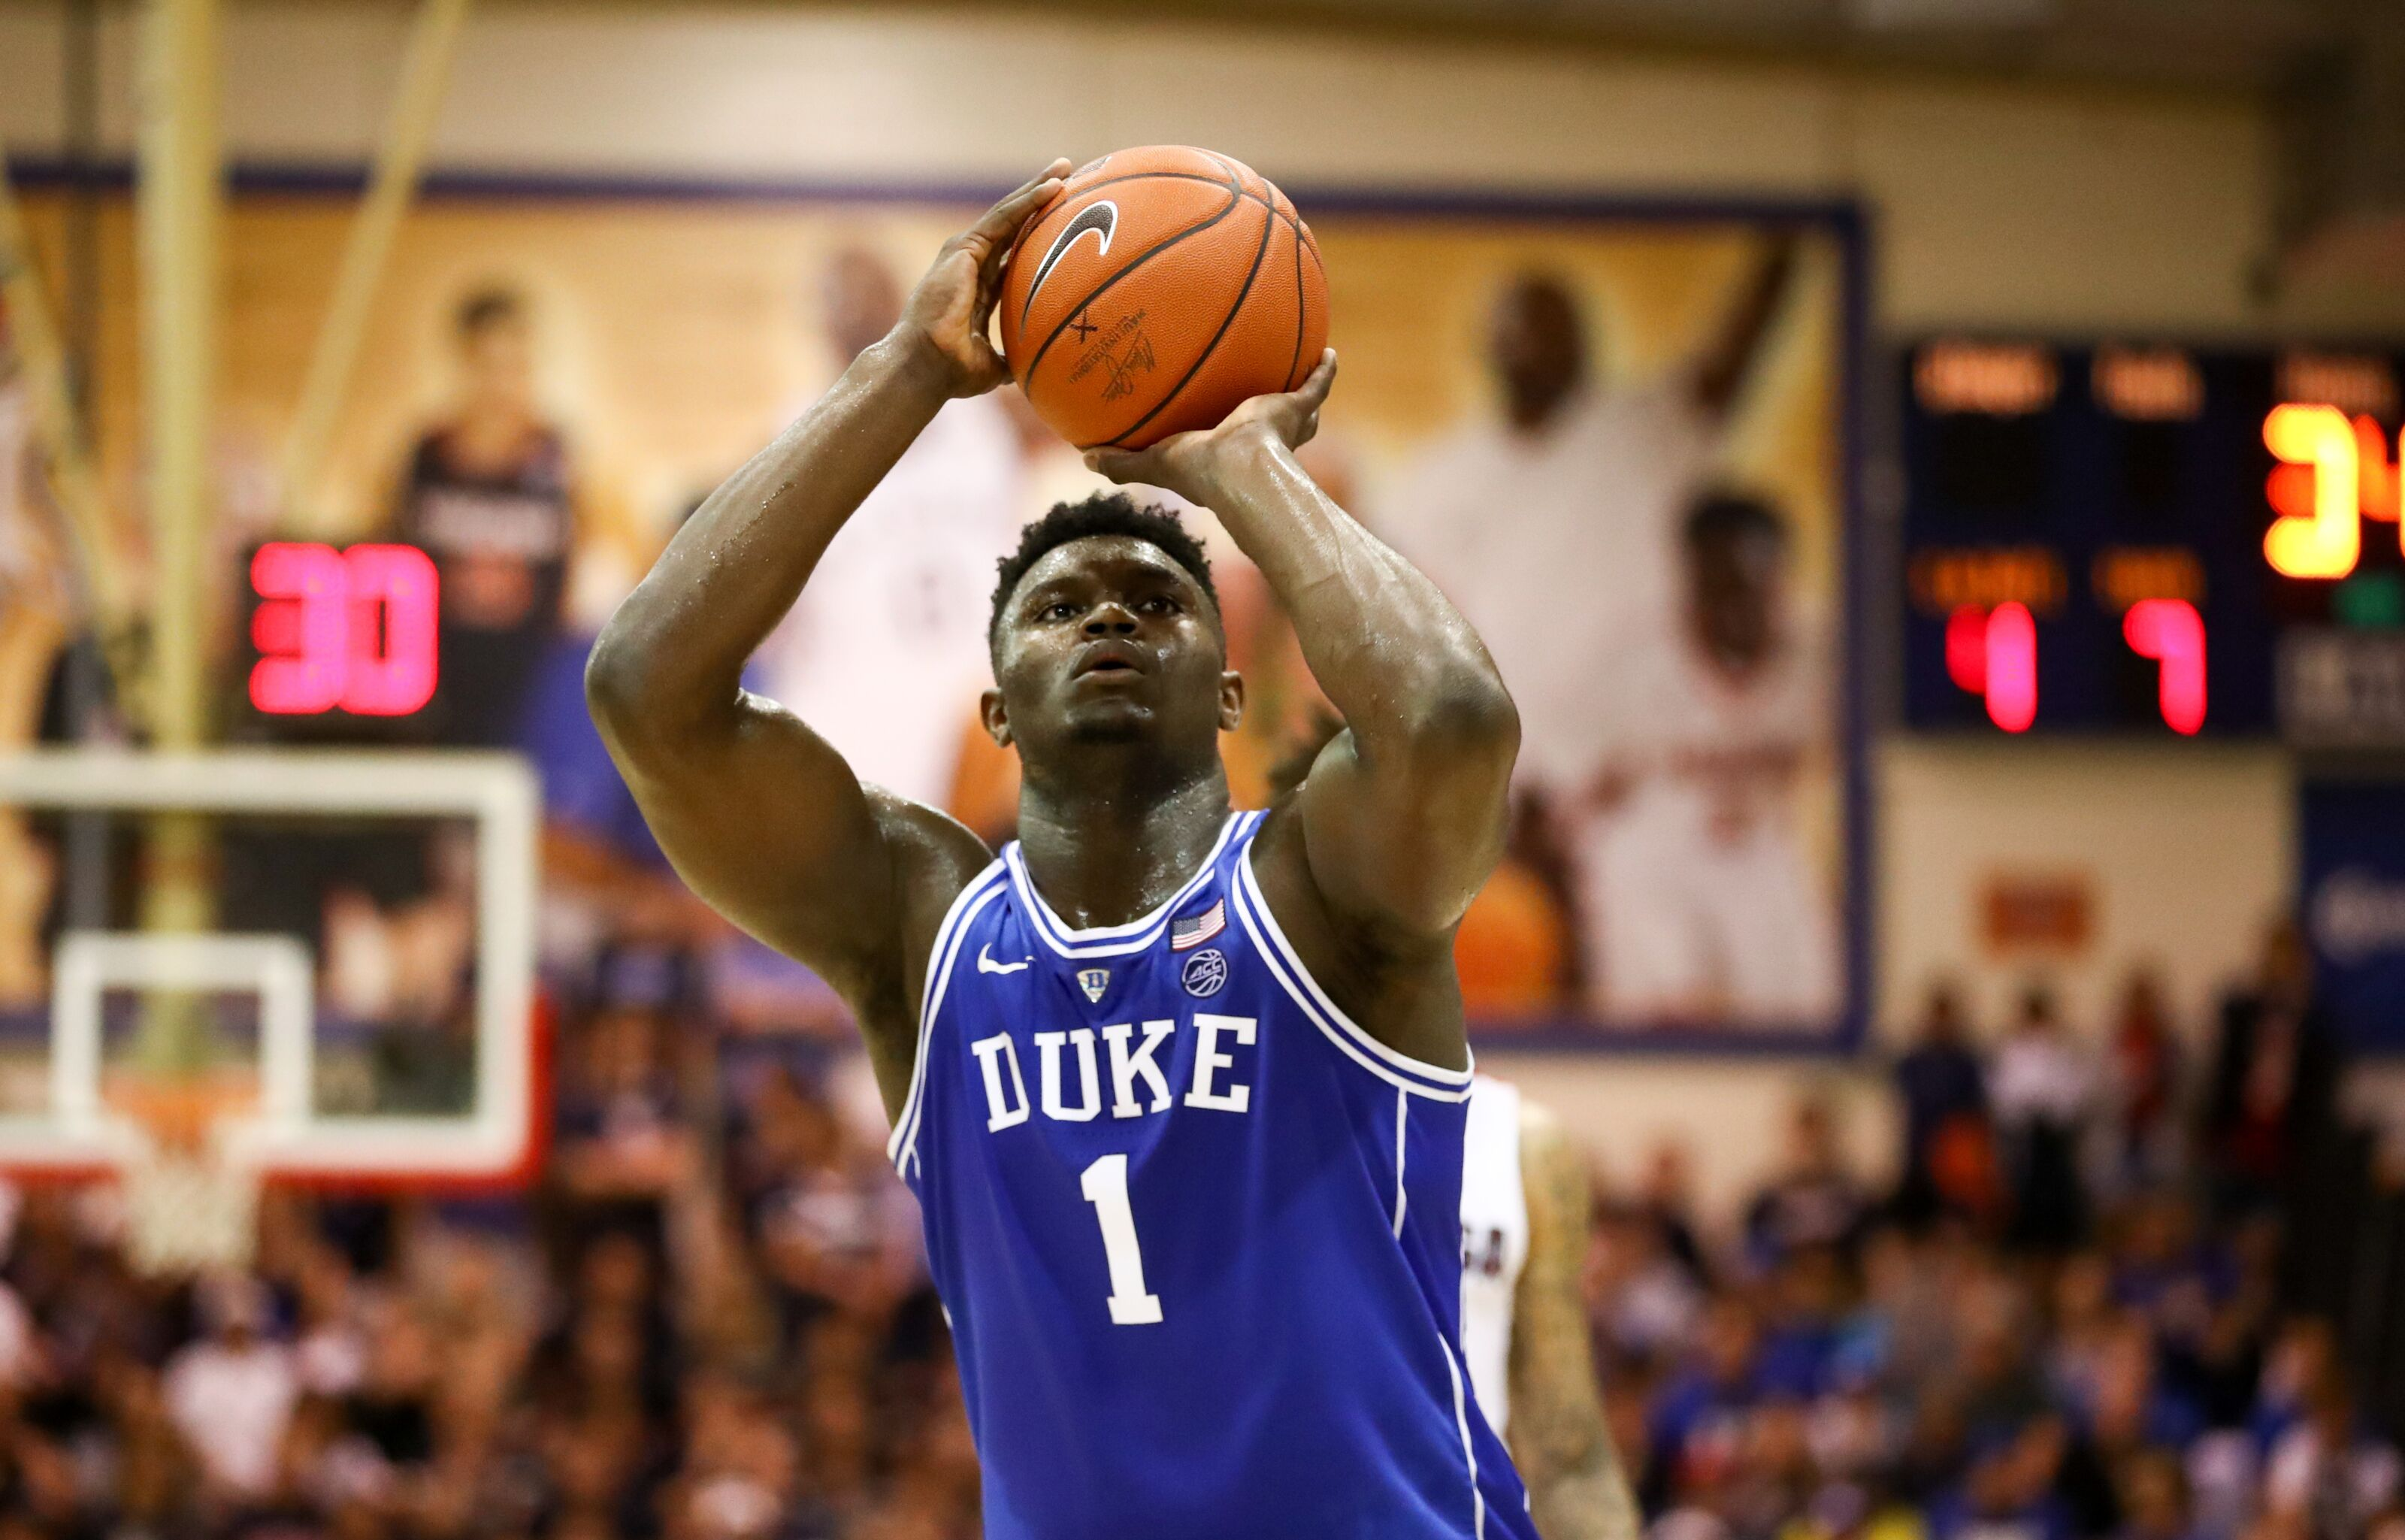 Duke Basketball: Free throw shooting a problem for the Blue Devil's